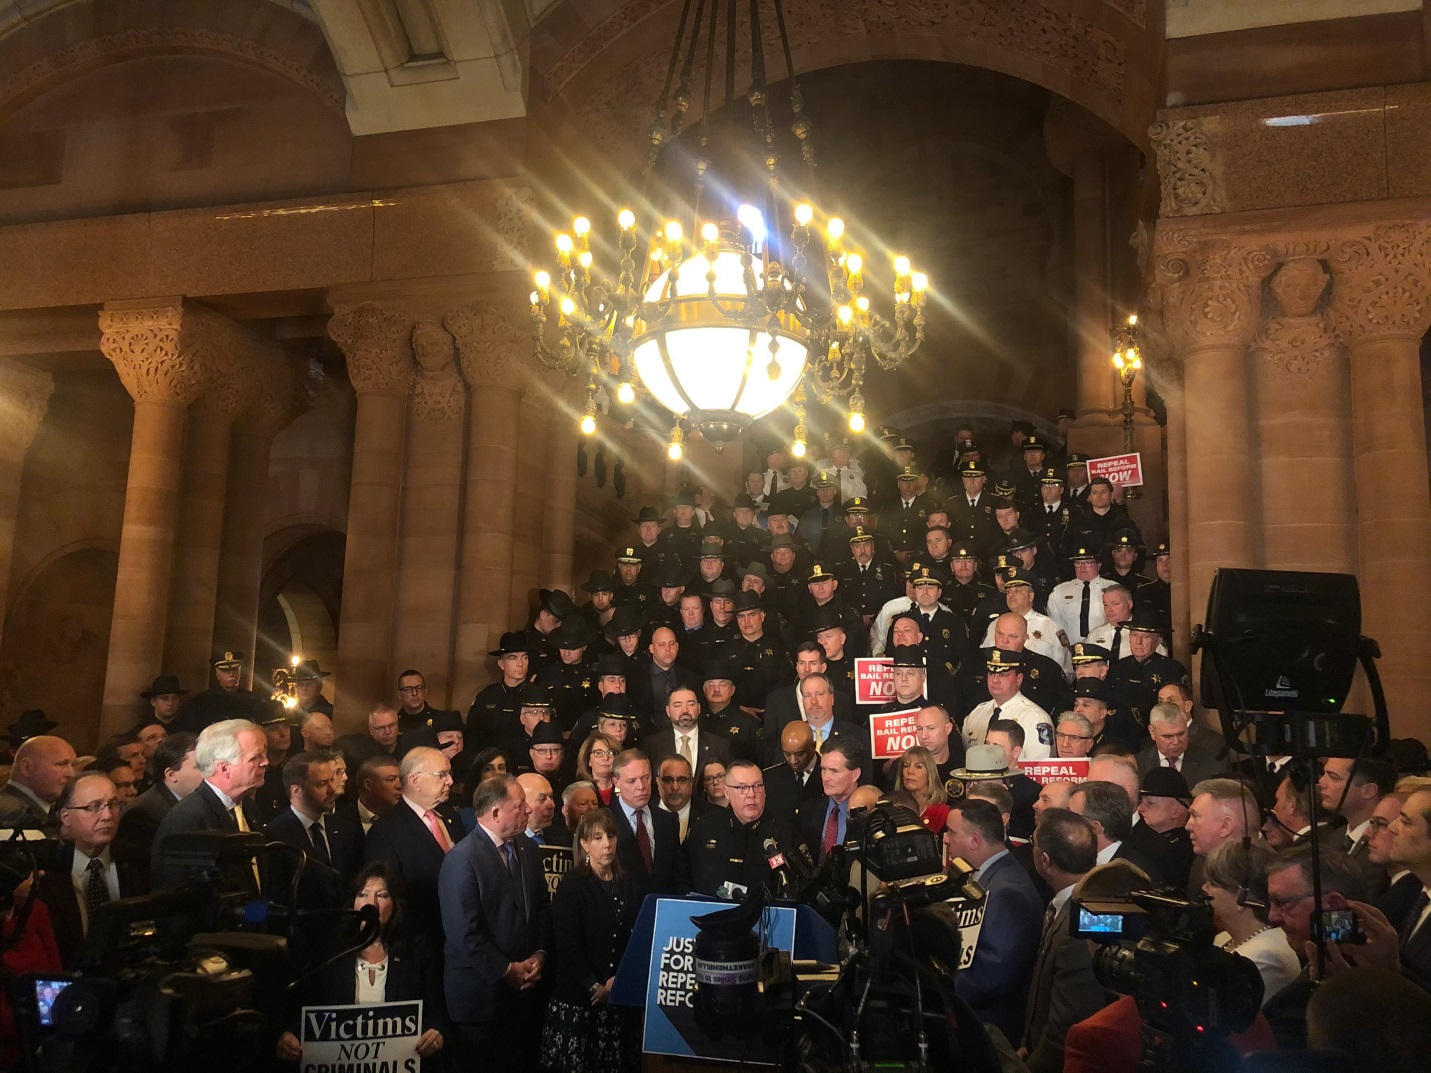 Assemblyman Michael Montesano (R,C,I-Glen Head) attended a rally to repeal bail reform at the State Capitol on Tuesday, February 4 with law enforcement officials, Assembly colleagues and state senator